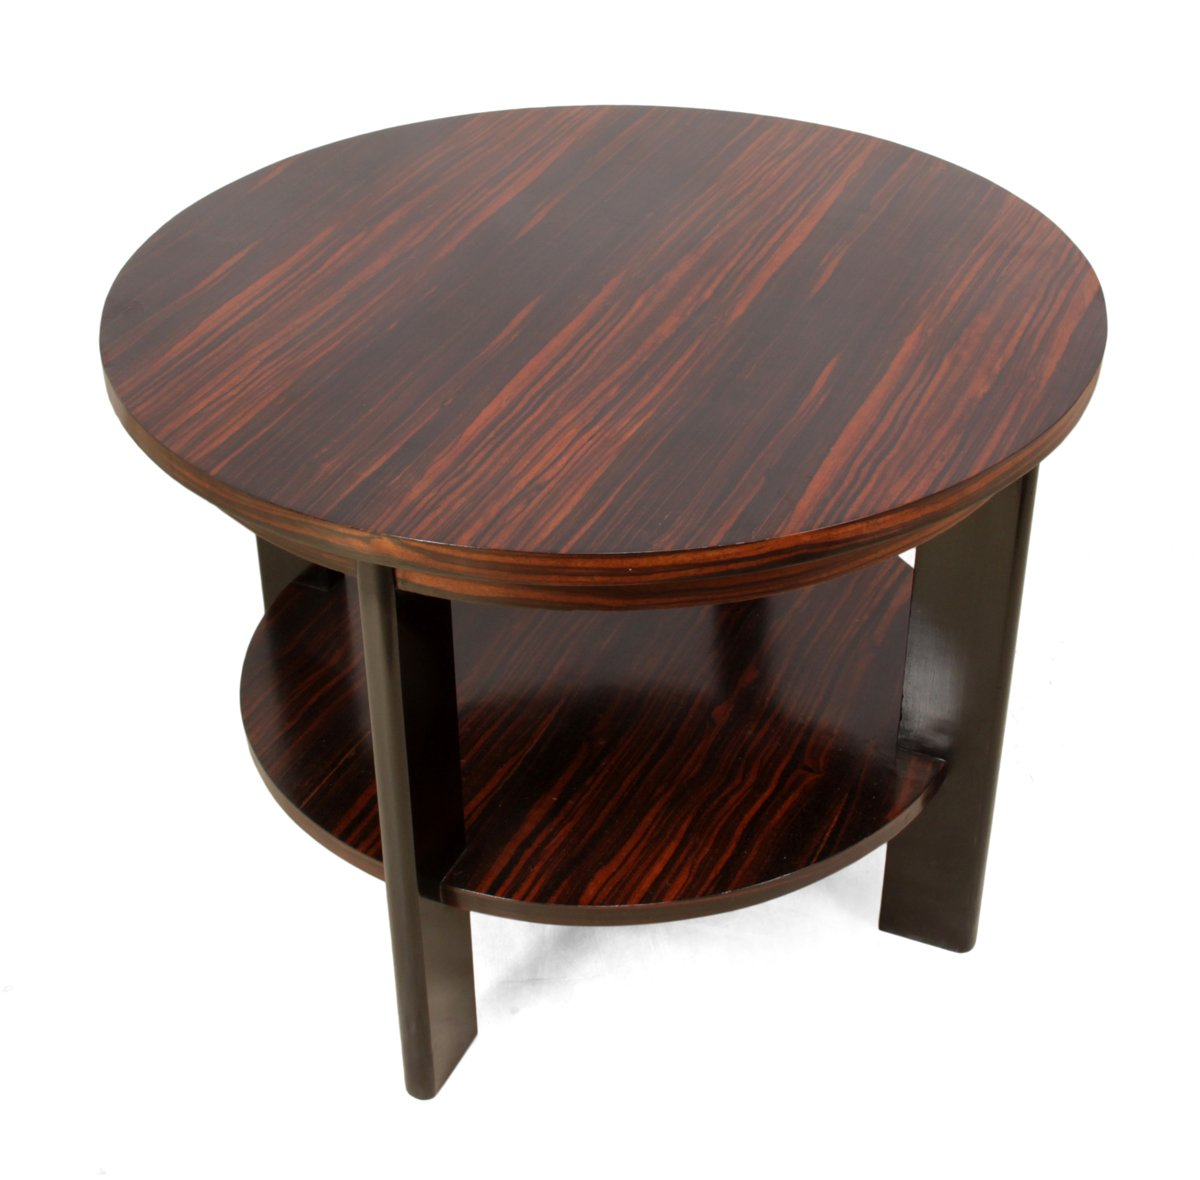 Art Deco Macassar Ebony Coffee Table 1930s For Sale At Pamono